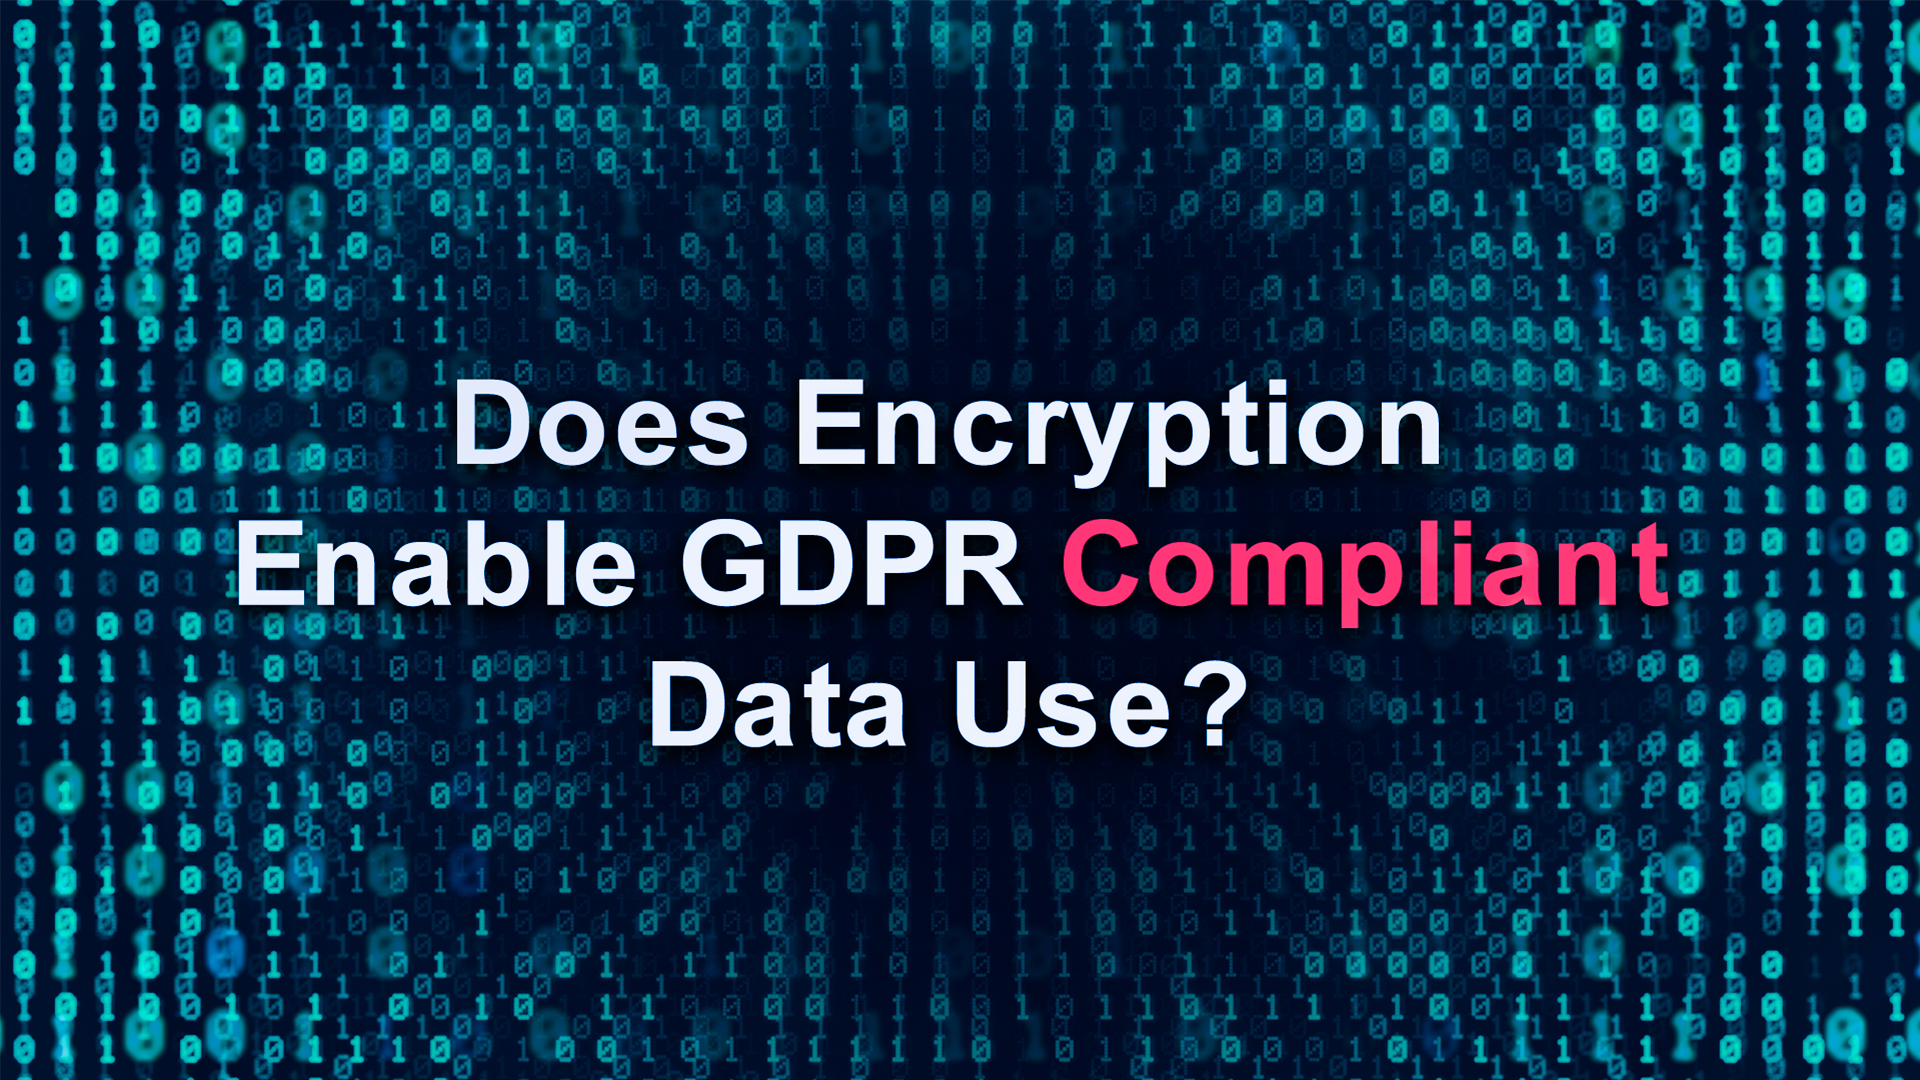 https://cdn2.hubspot.net/hubfs/3888288/Does%20Encryption%20Enable%20GDPR%20-%20Anonos%20BigPrivacy%20GDPR%20CCPA_.jpg